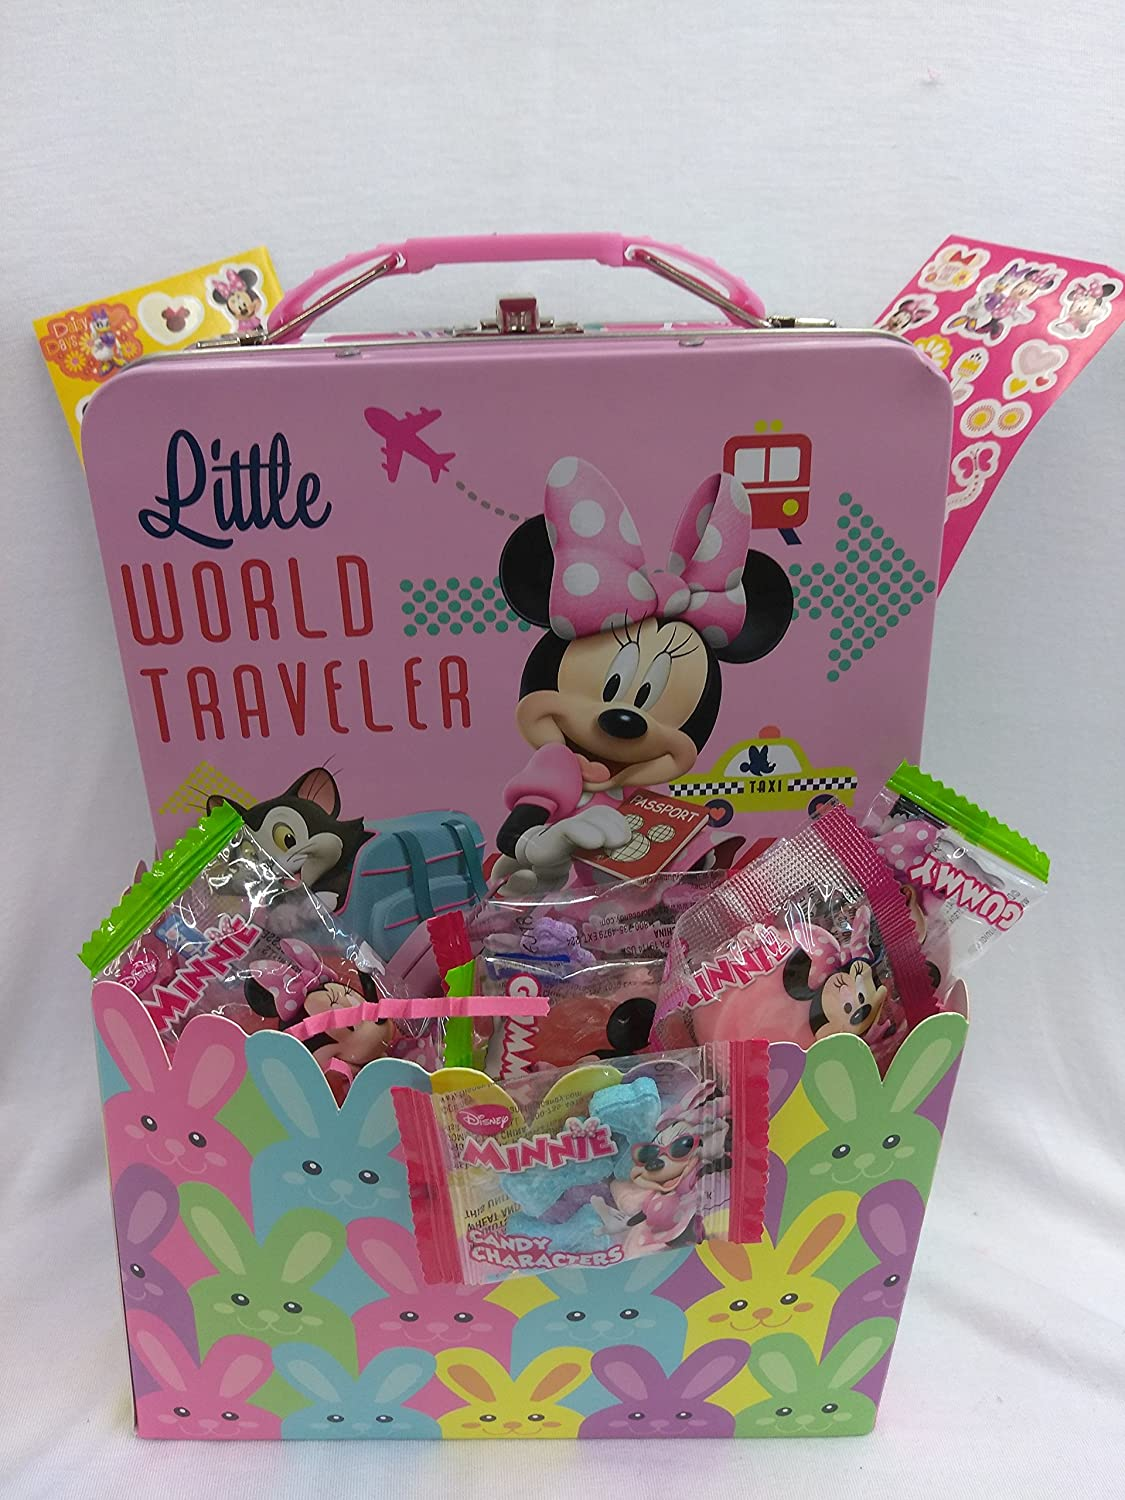 Happy Minnie Mouse Bowtique Collectors Box Fun Easter Basket Kids Toddlers Gift Children Pre Made Girls Eggs Goodies Candy Plush Lunch TIN